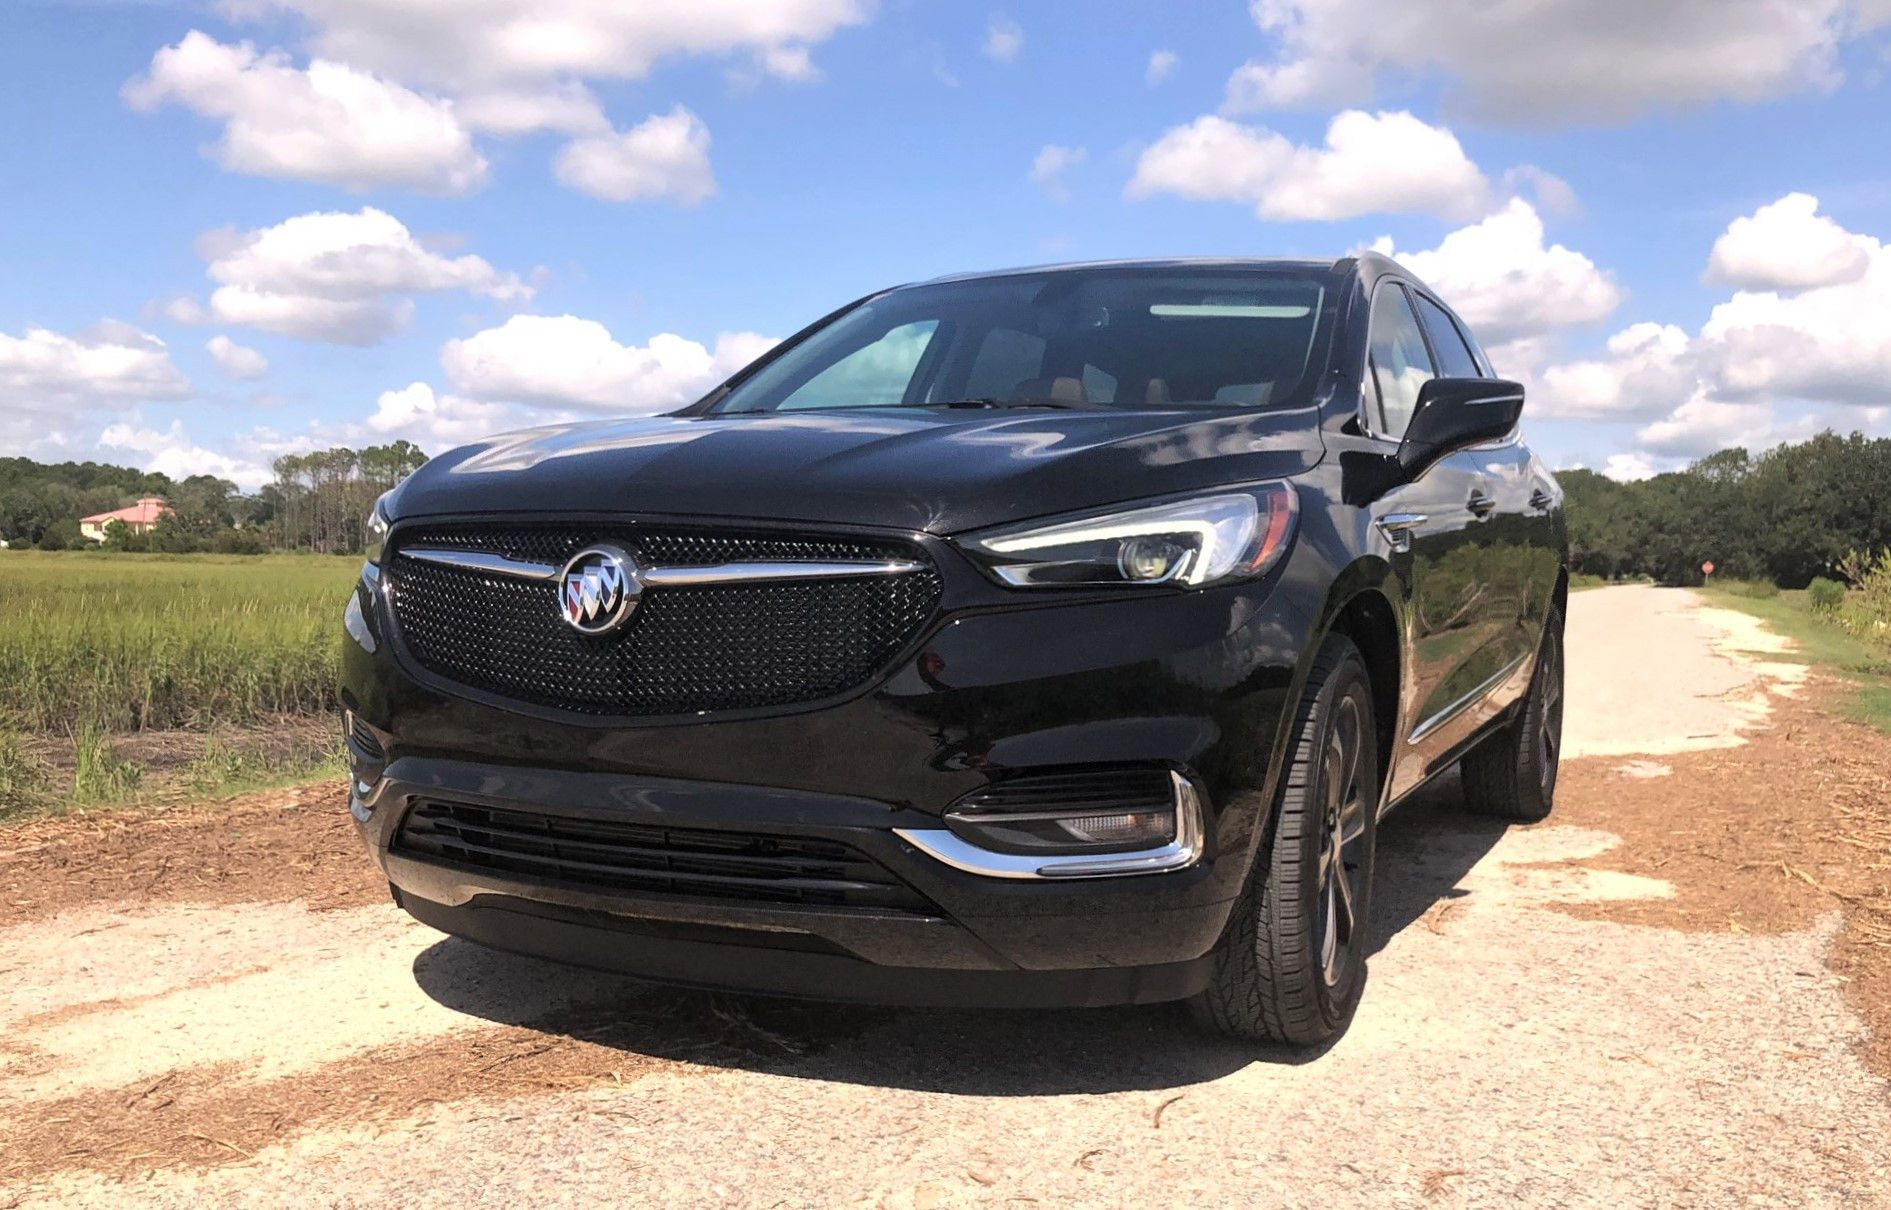 2020 Buick Enclave St Road Test Review Drive Video Best Of 2019 Awards Buick Enclave Buick Lexus Lx570